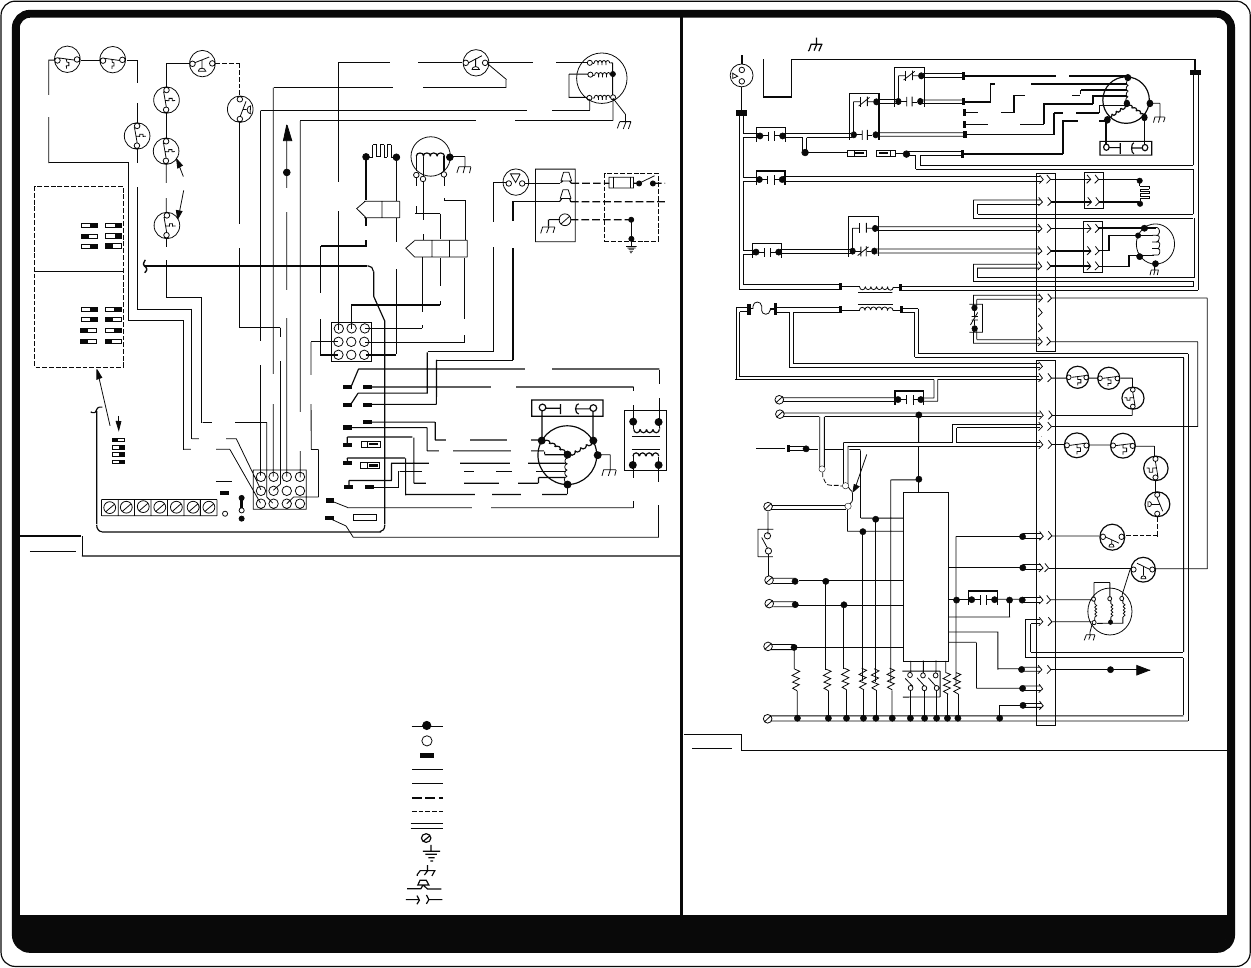 c2b73d22 c45f 43df a574 b6e707ea0cc7 bg8 power flame wiring diagram power flame burners wiring diagrams honeywell pressure switch wiring diagram at gsmx.co